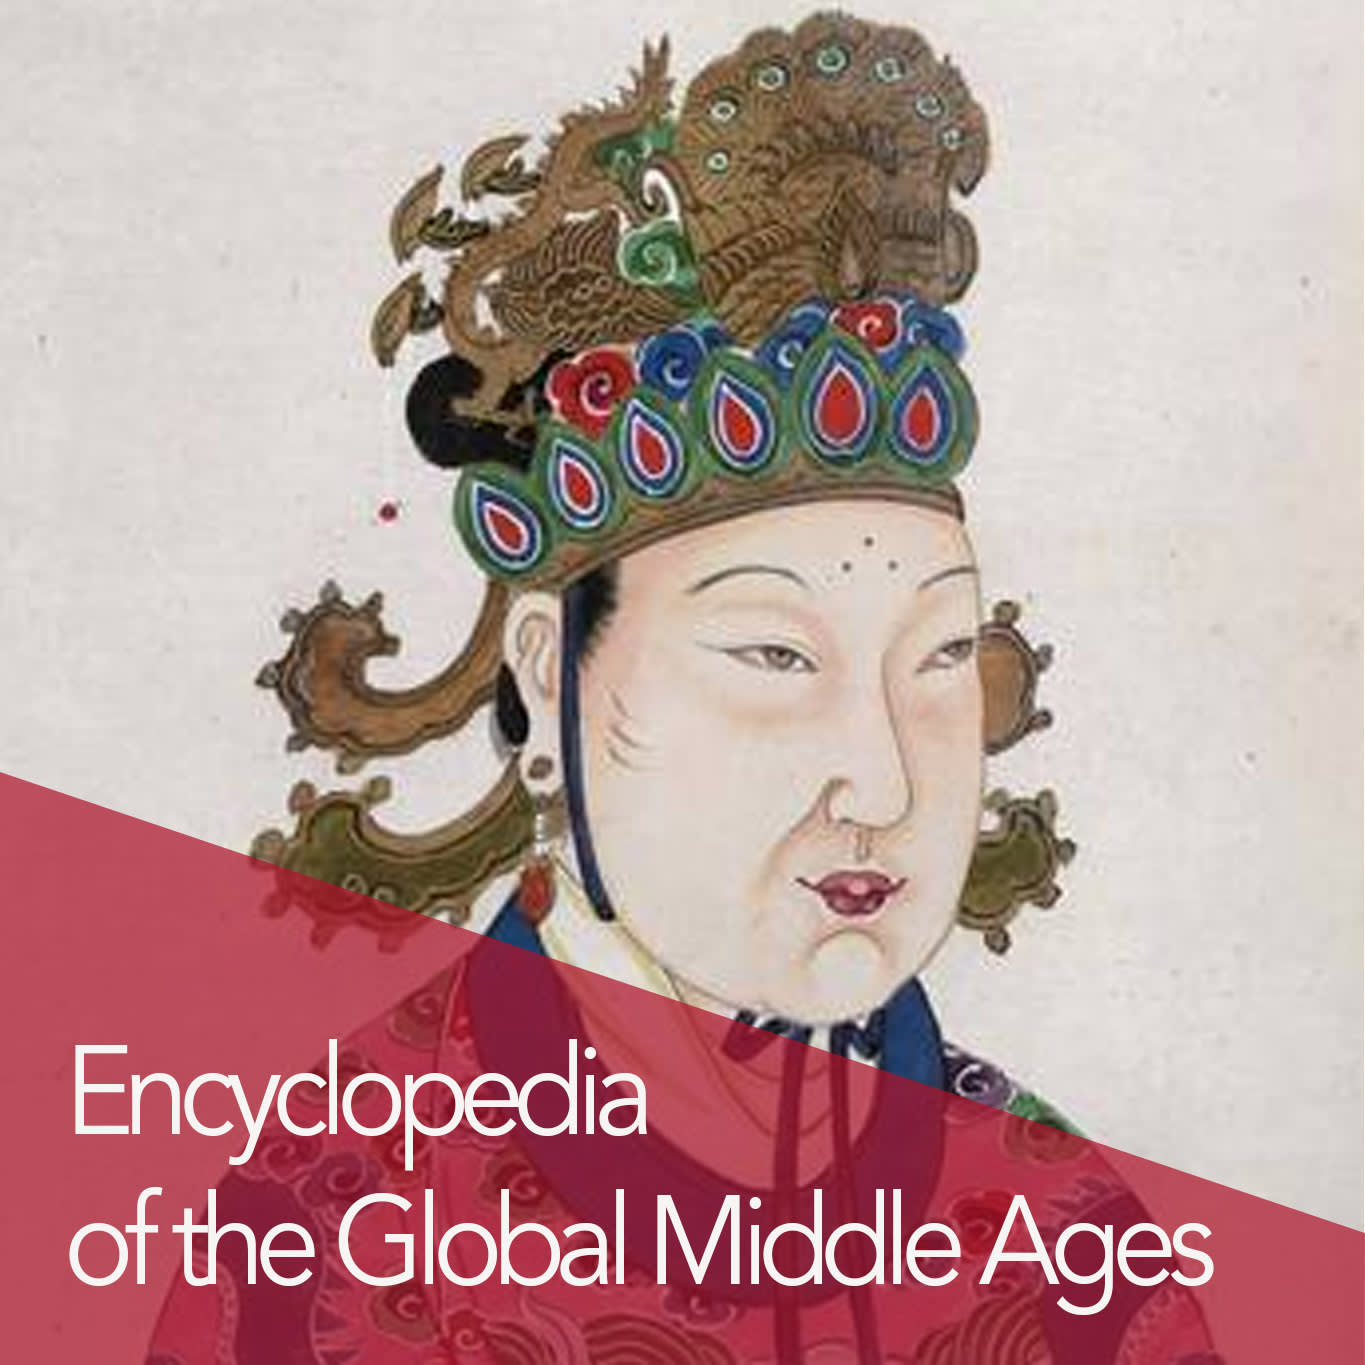 Click here to view the Encyclopedia of the Global Middle Ages.